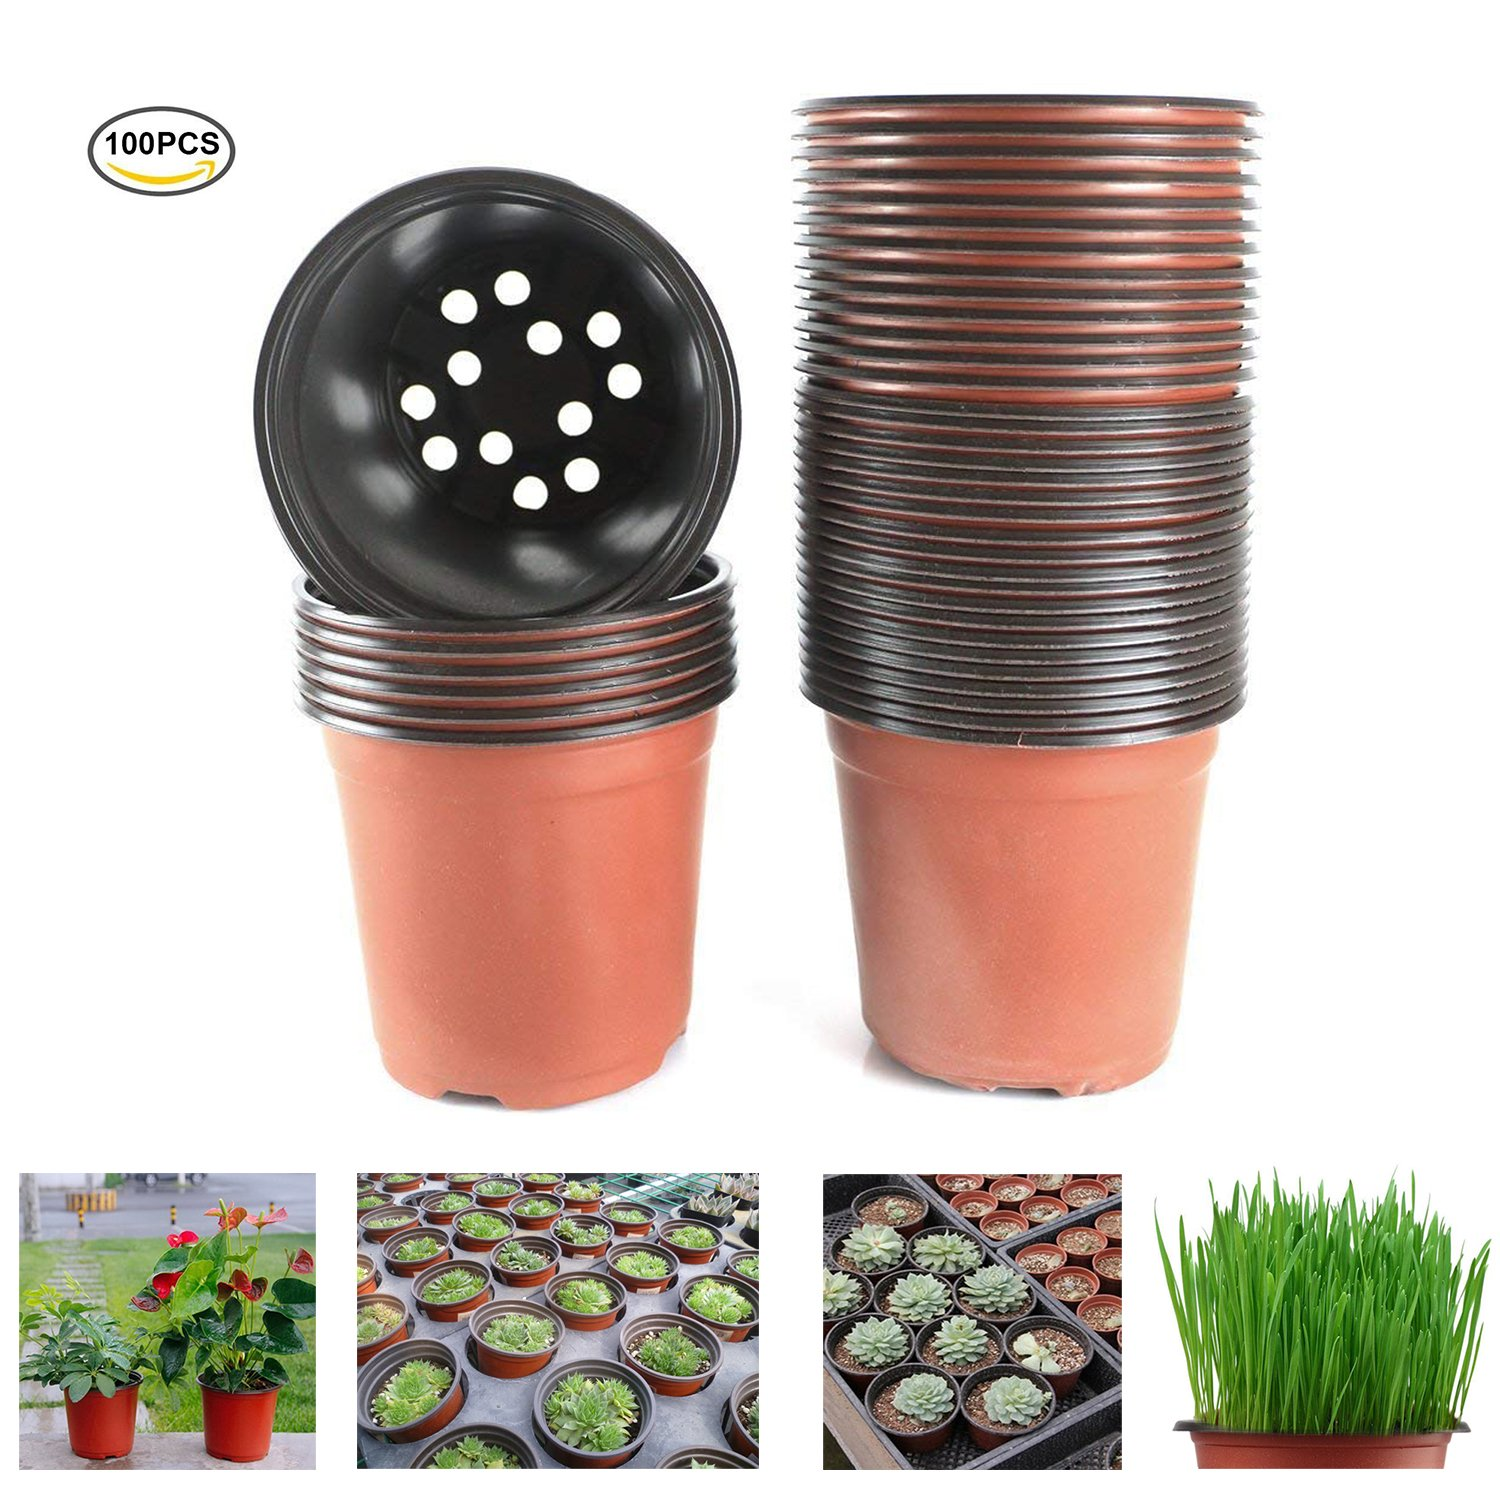 Oubest Plastic Plant Nursery Pots 4'' 100 pcs reusable for Seed Starting Seedlings Cuttings Transplanting Flower Plant Pots